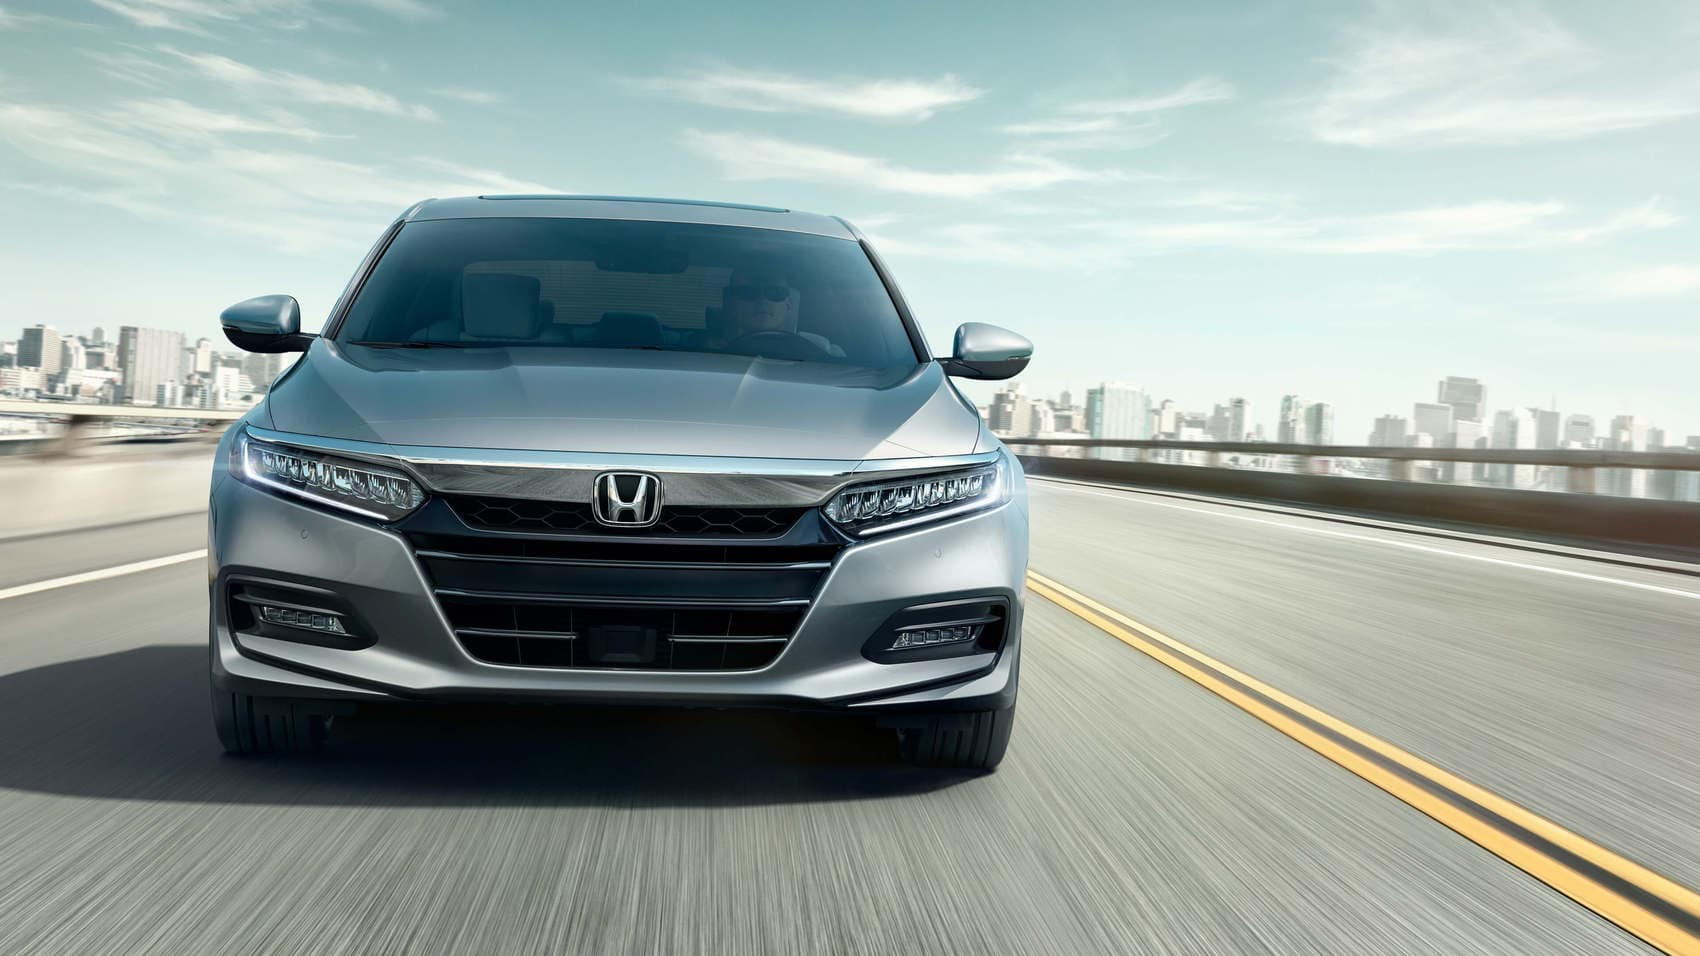 2019 Honda Accord Front View